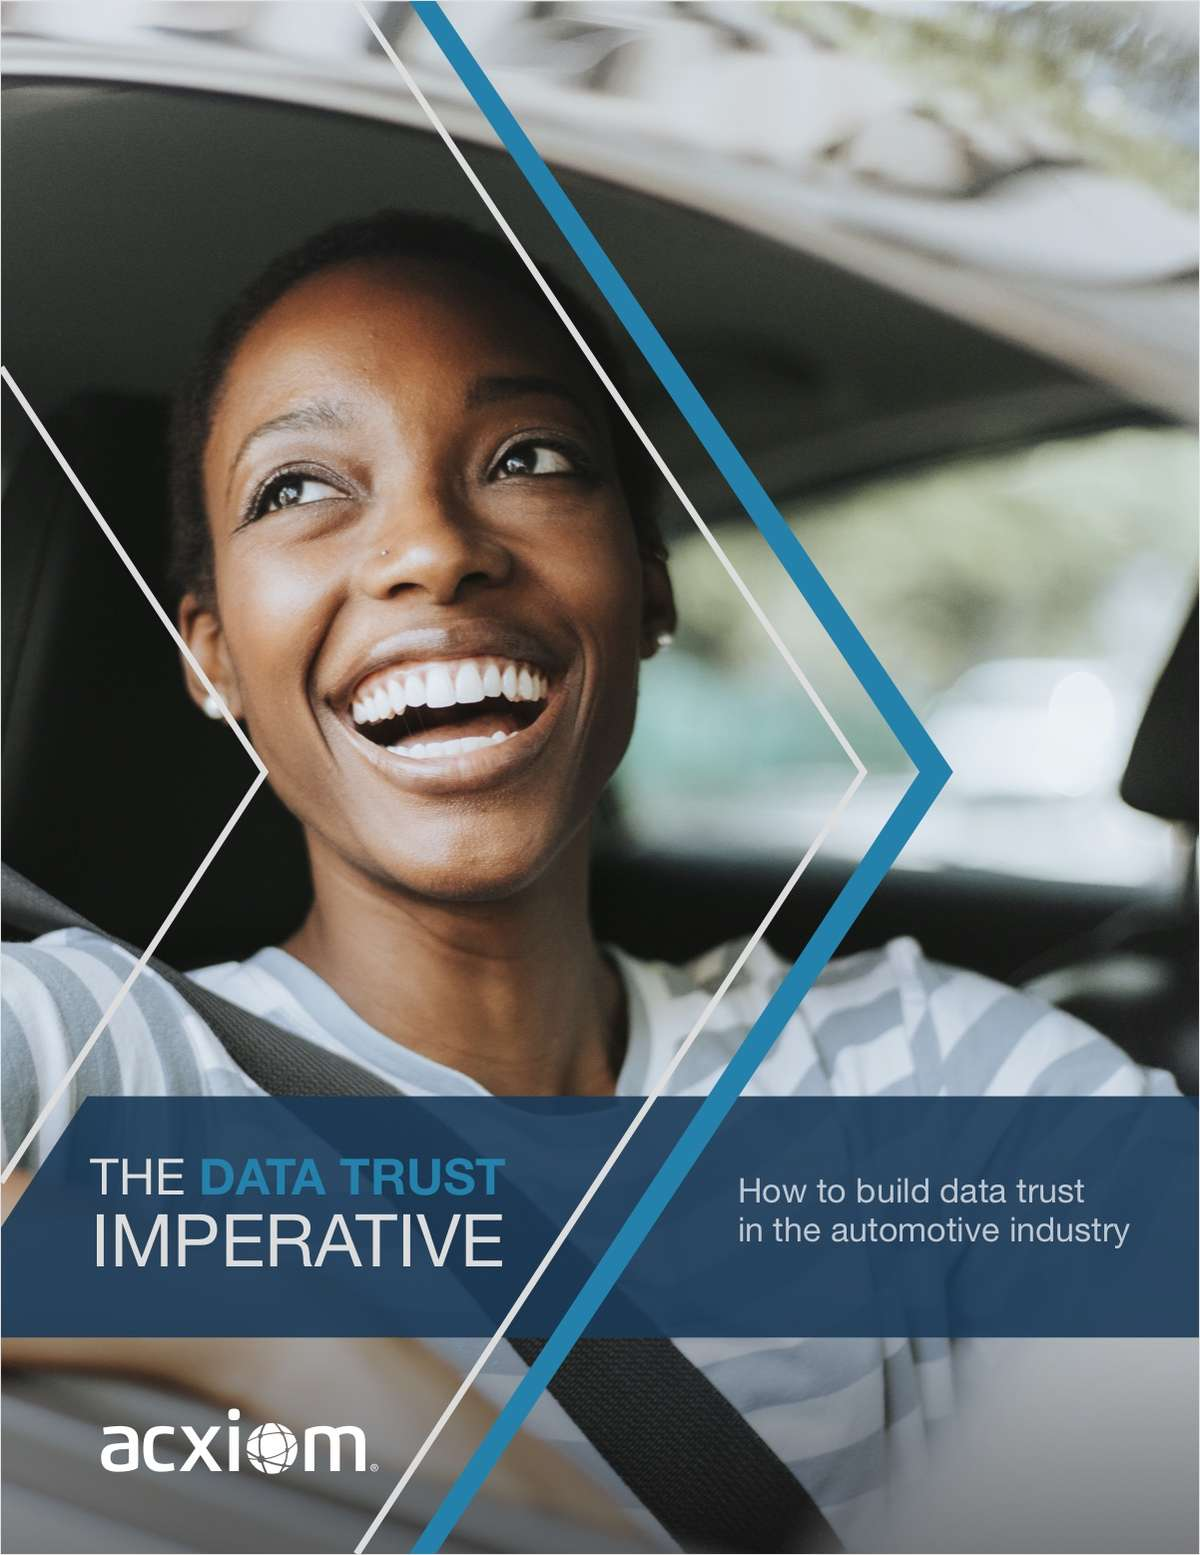 The Data Trust Imperative - Automotive